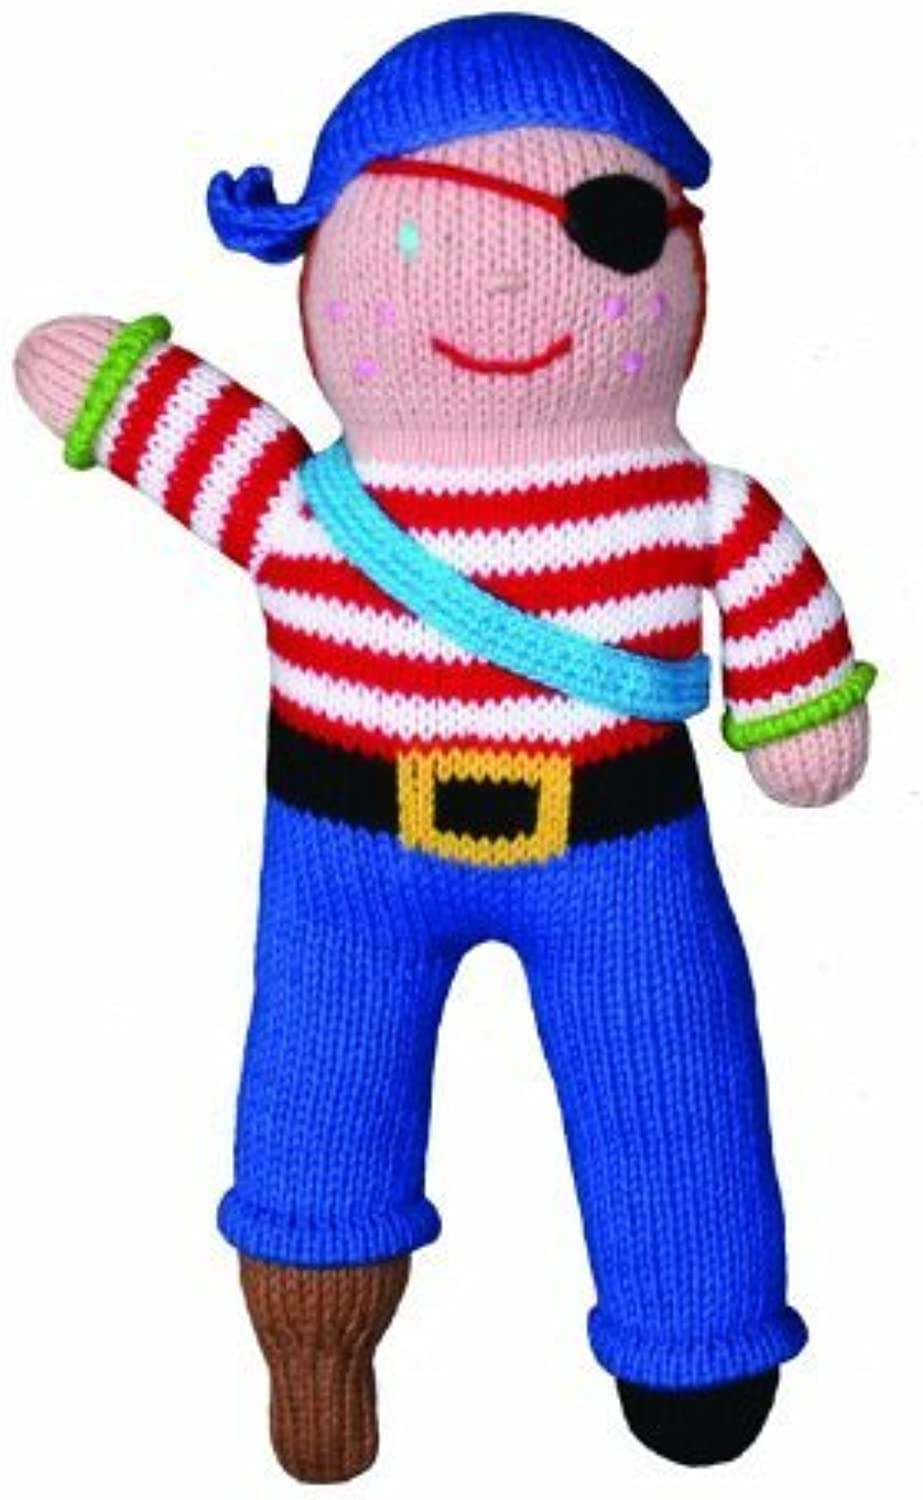 Zubels Pirate Arrnee 12-inch Hand-Knit Doll by Zubels